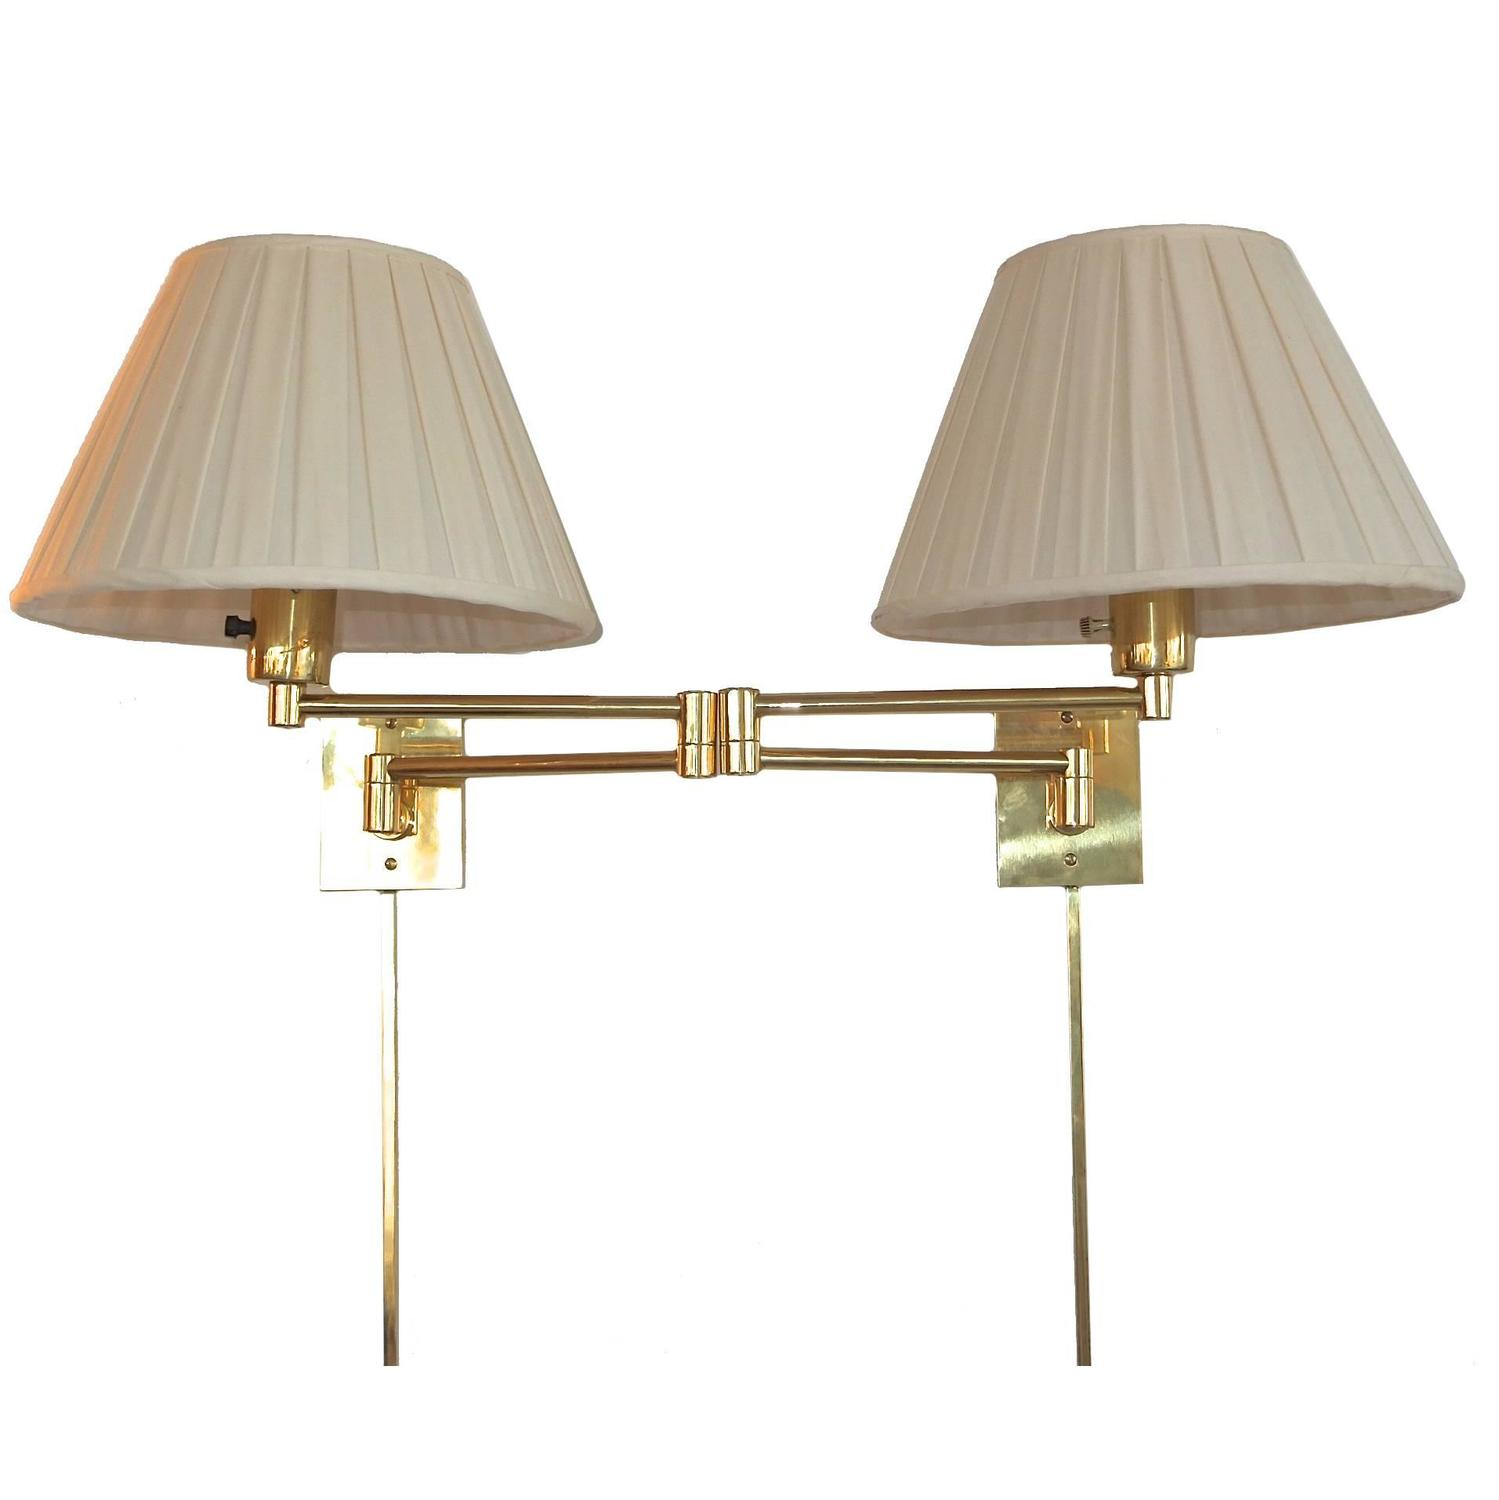 Wall Lighting Swing Arm Lamps : Pair of Georg W. Hansen Brass 1706 Double Swing Arm Wall Lamps For Sale at 1stdibs